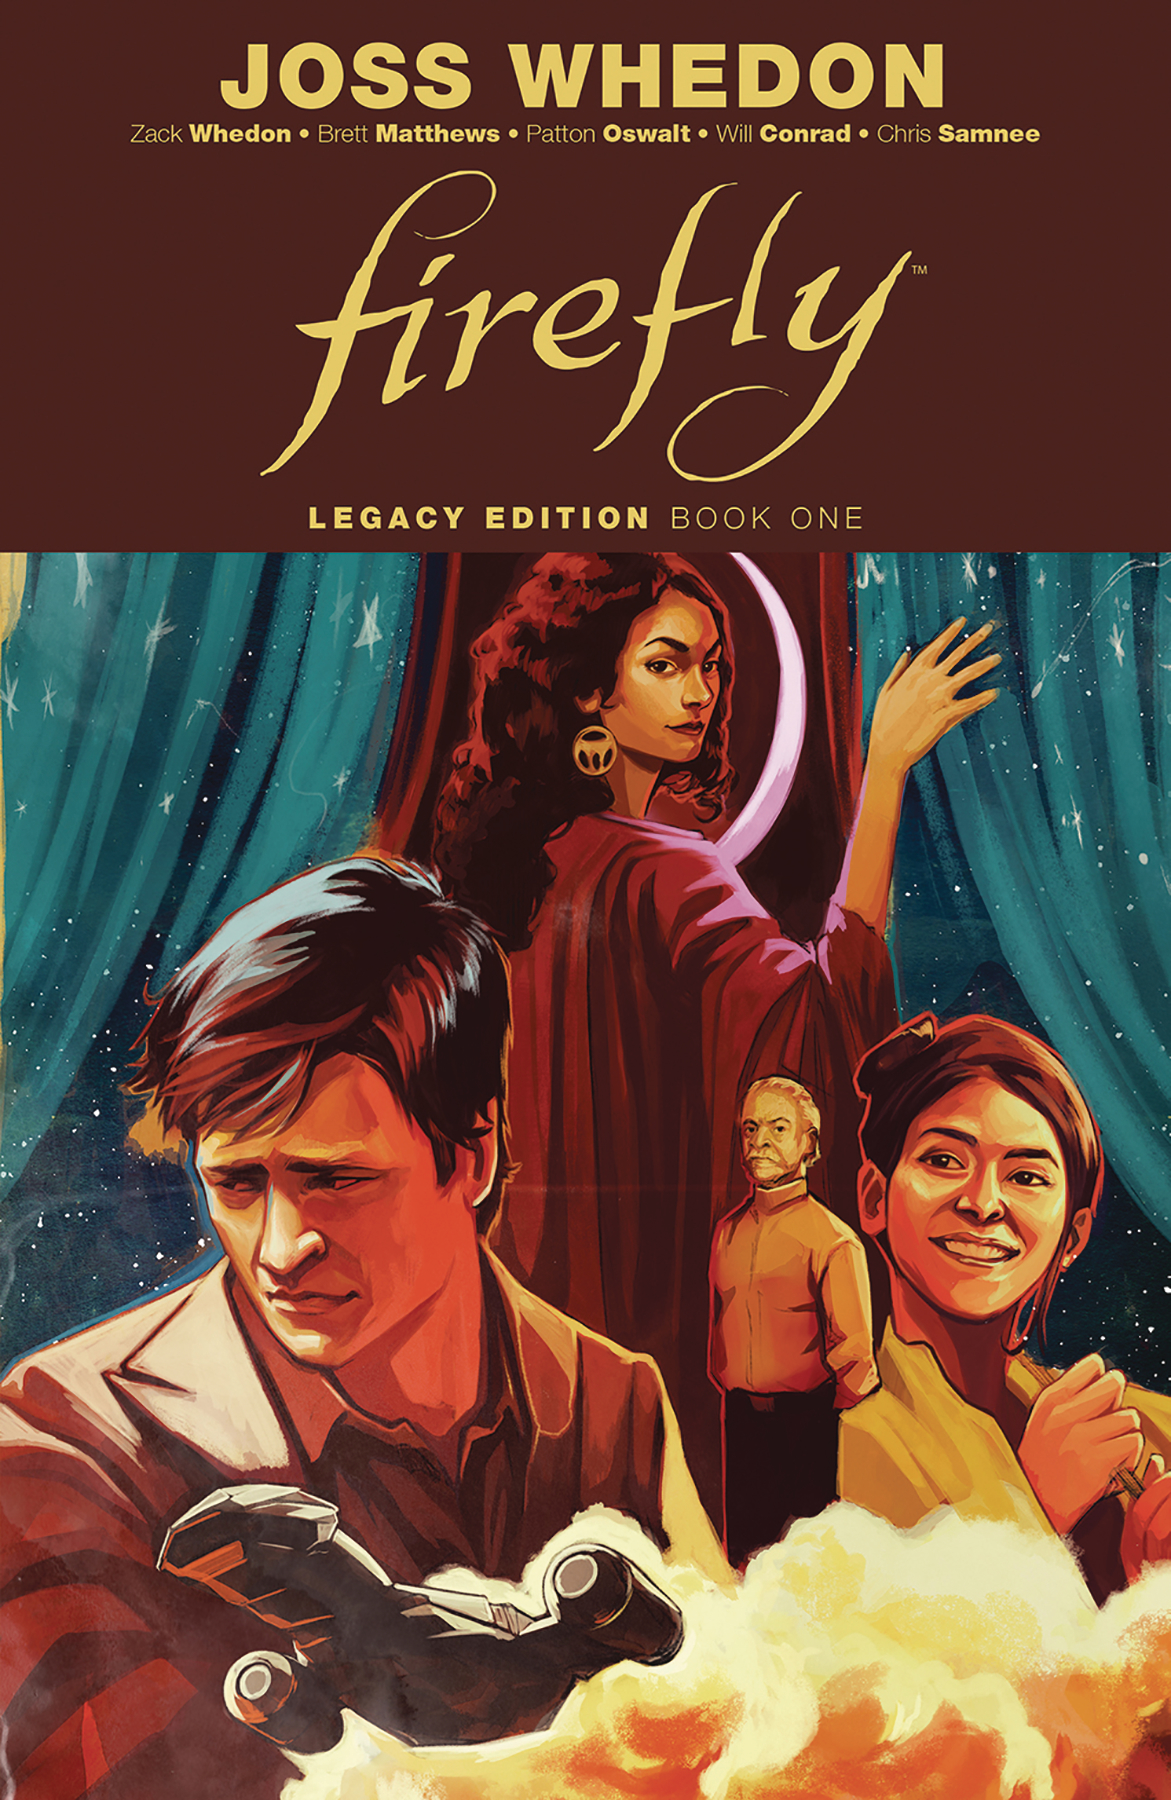 Firefly Legacy Edition reprints all of the Dark Horse Firefly comics into a single volume